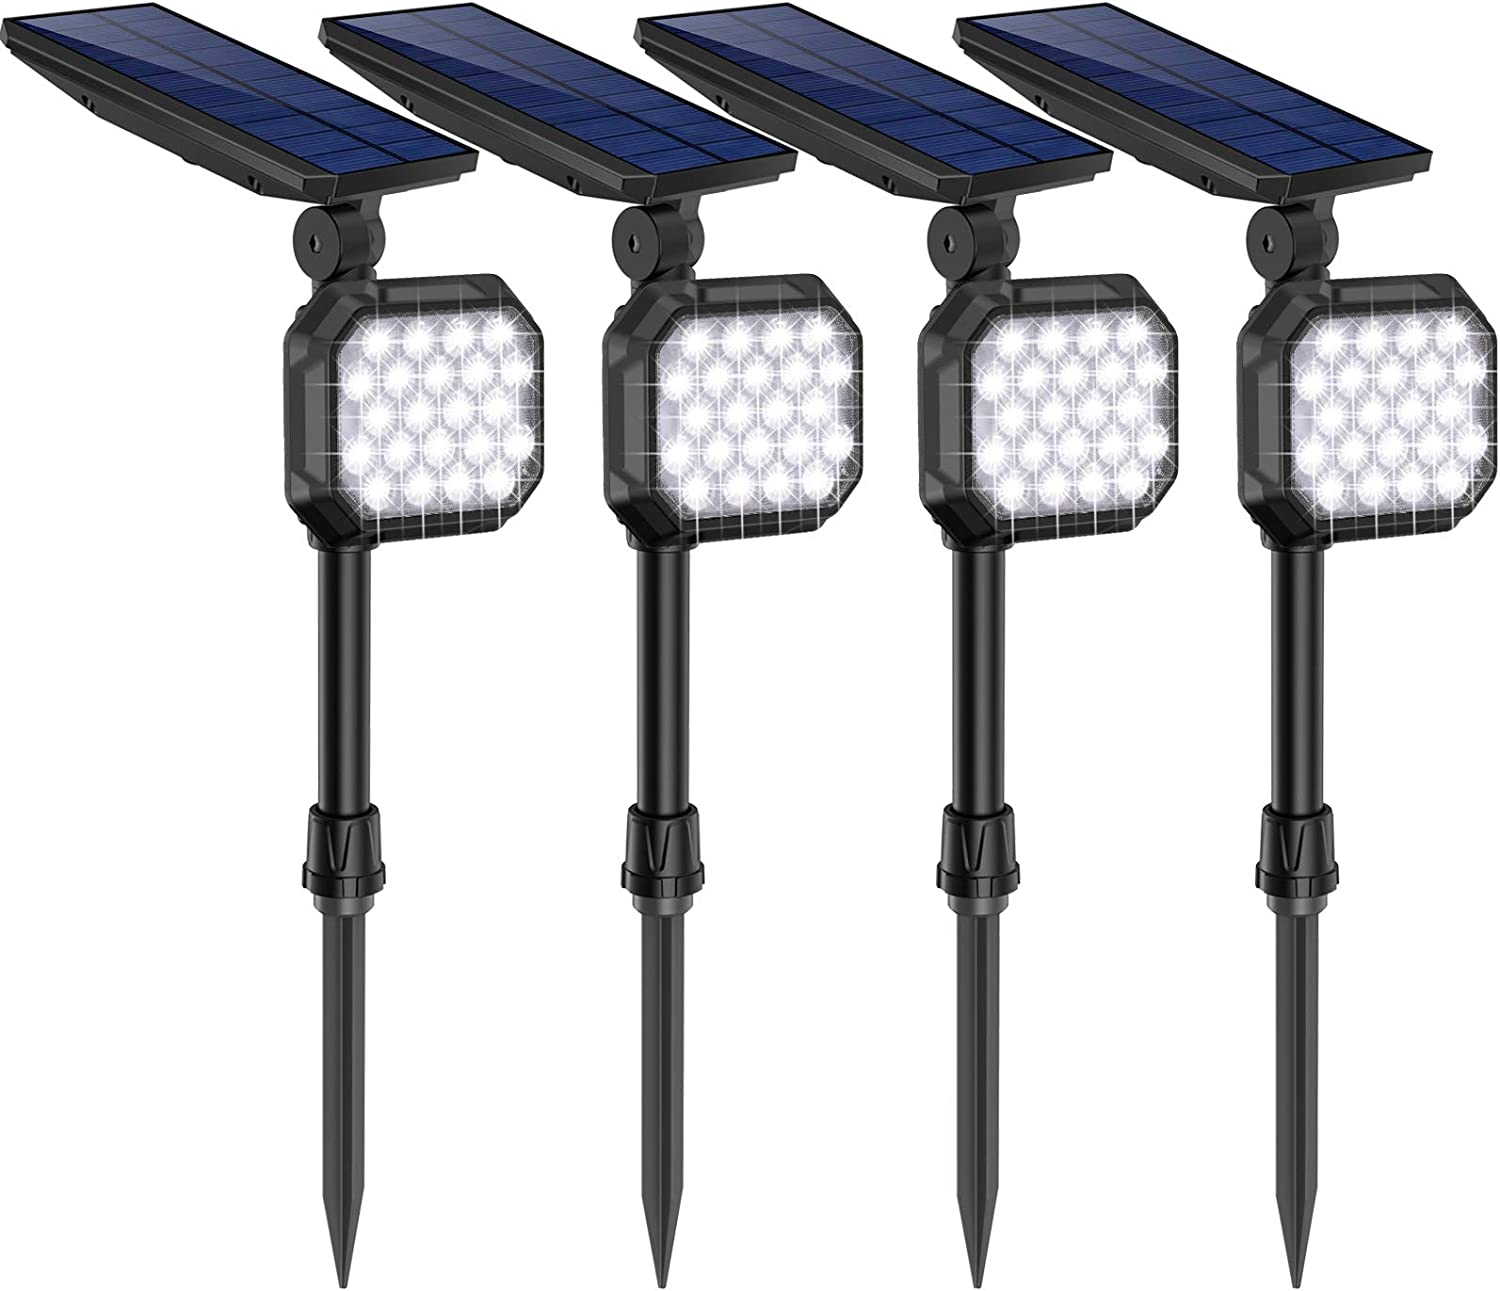 US STOCK* 4PACK Solar Spot Lights Outdoor LED Garden Landscape Path Wall Lamps